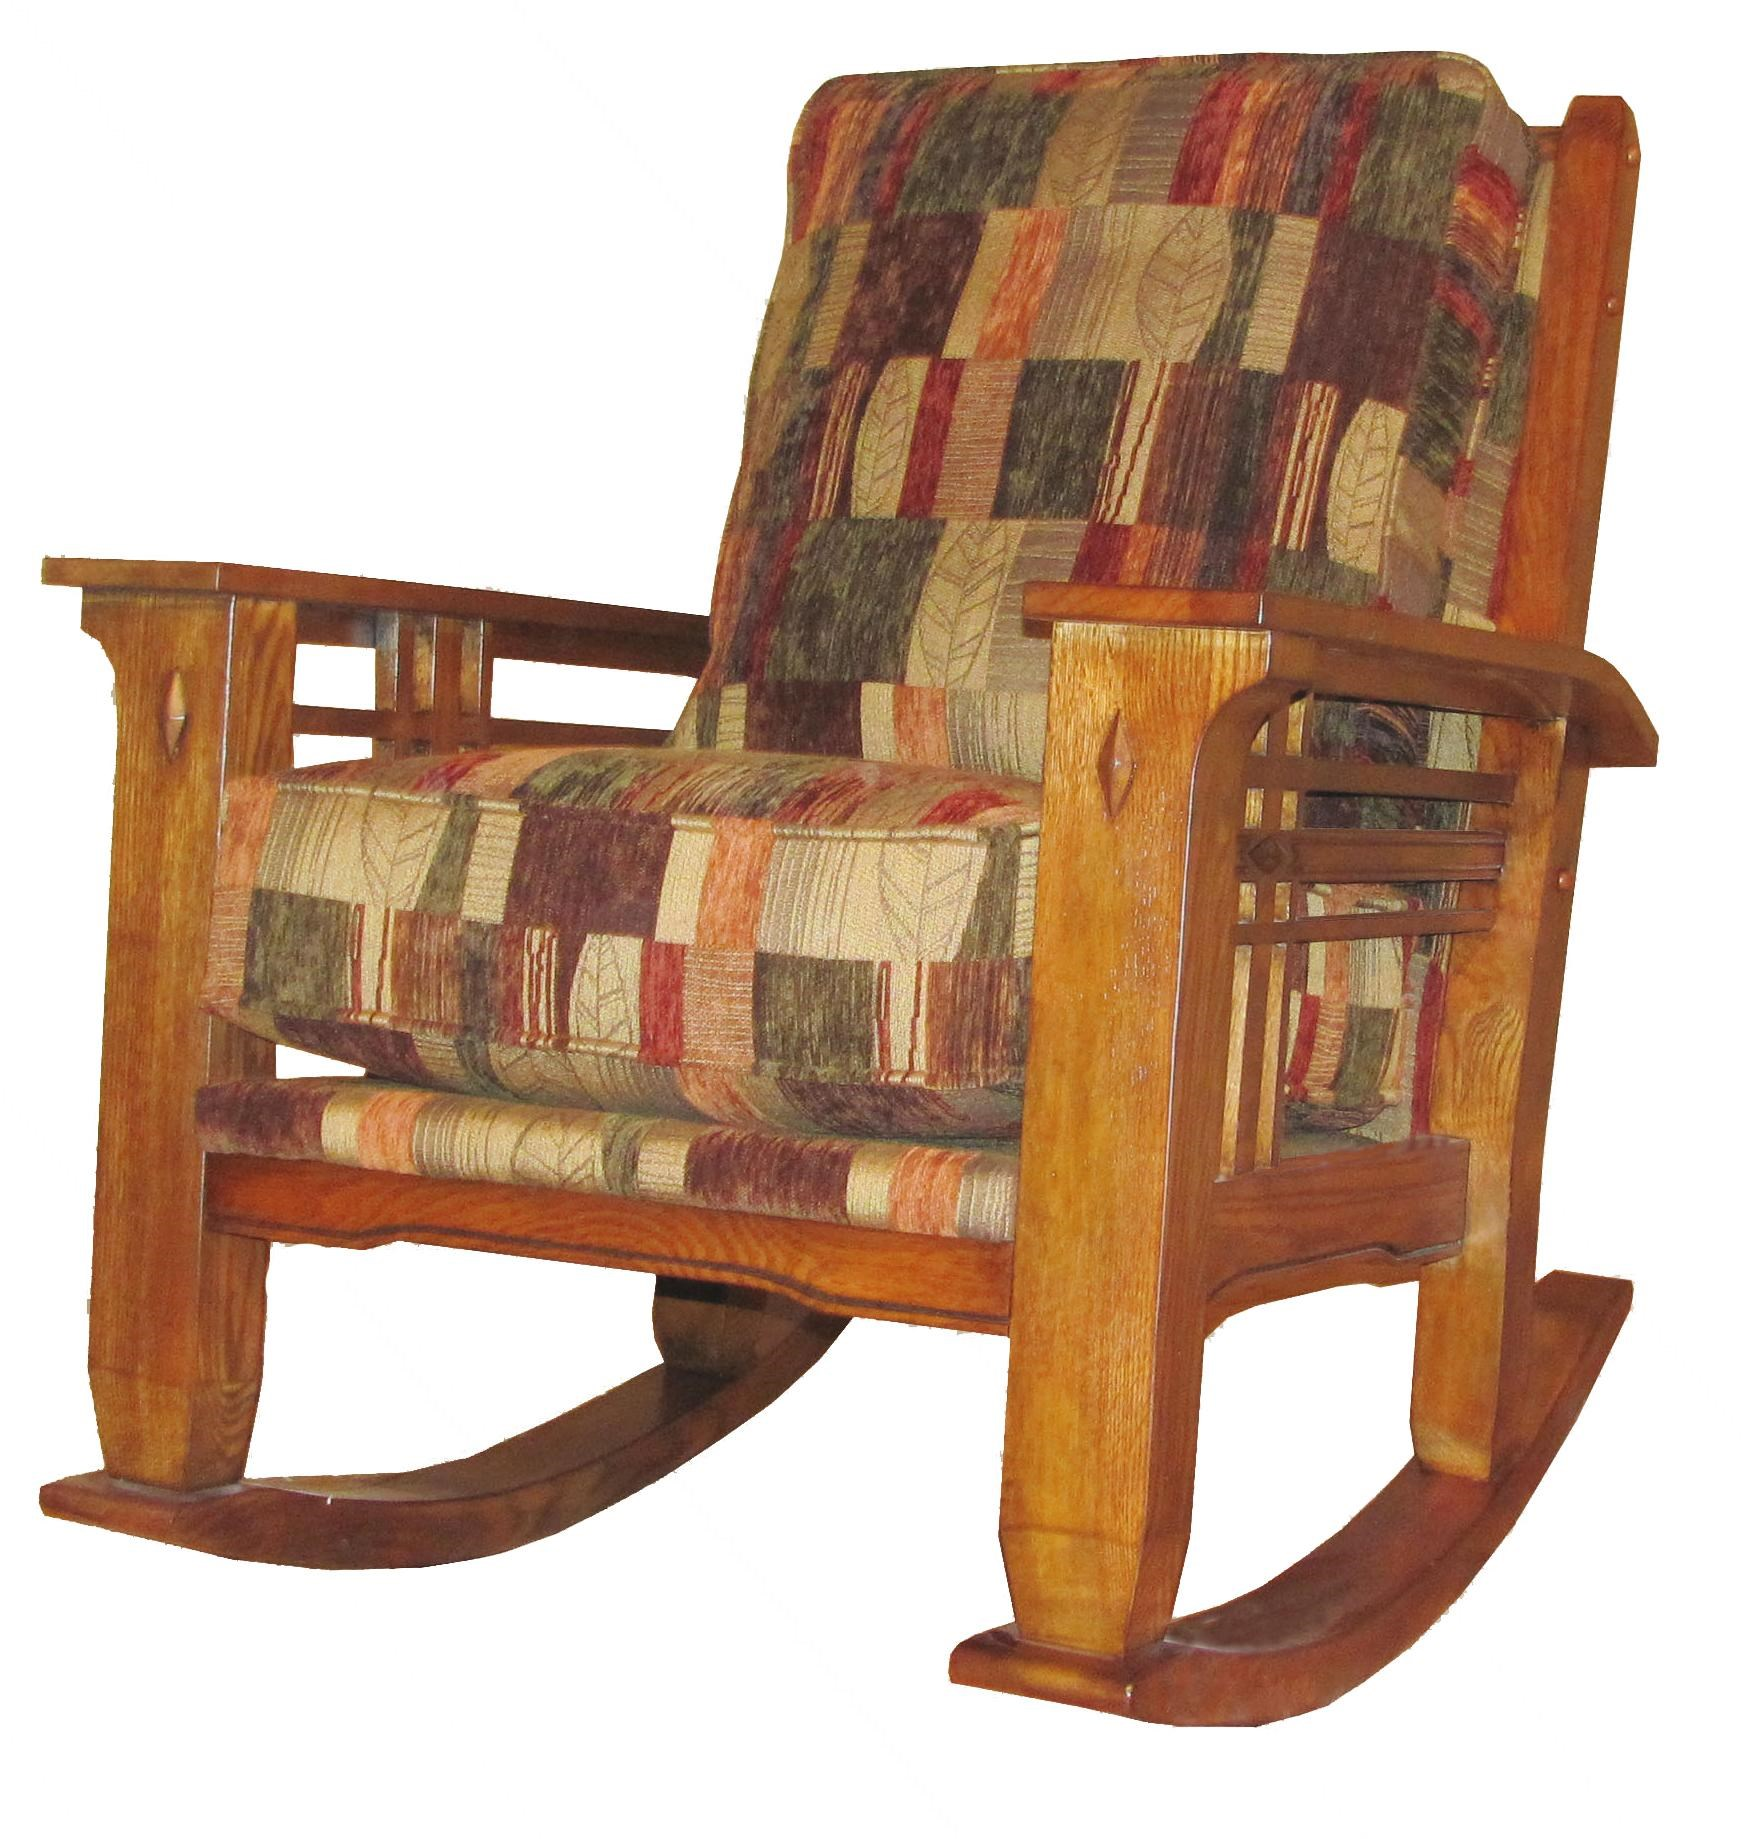 Wood Rocking Chair Talisan Rustic Country Rocker Chair By Marshfield At Conlin S Furniture